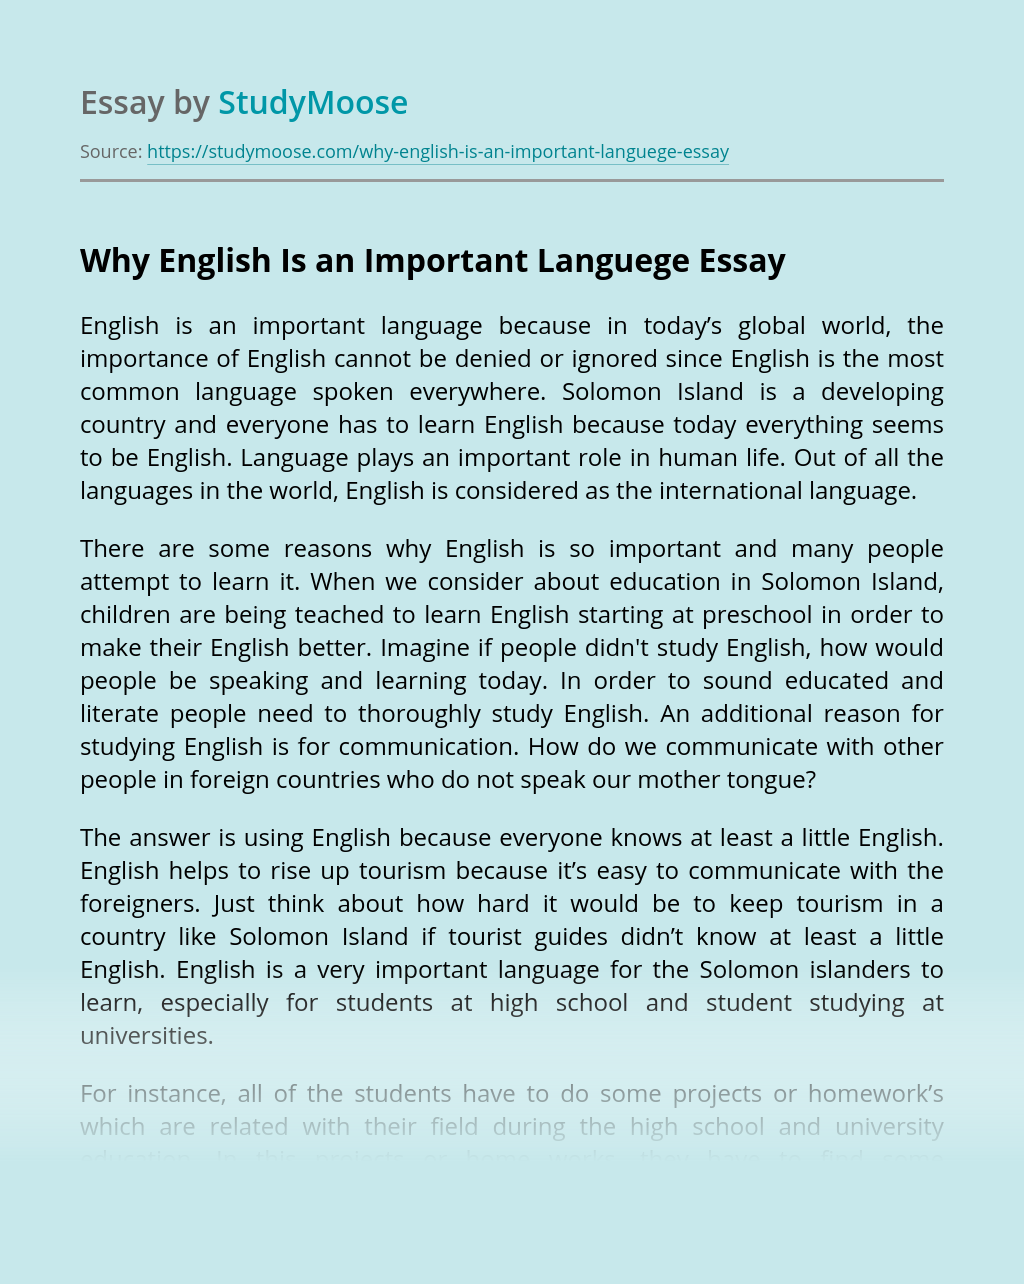 Why English Is an Important Languege